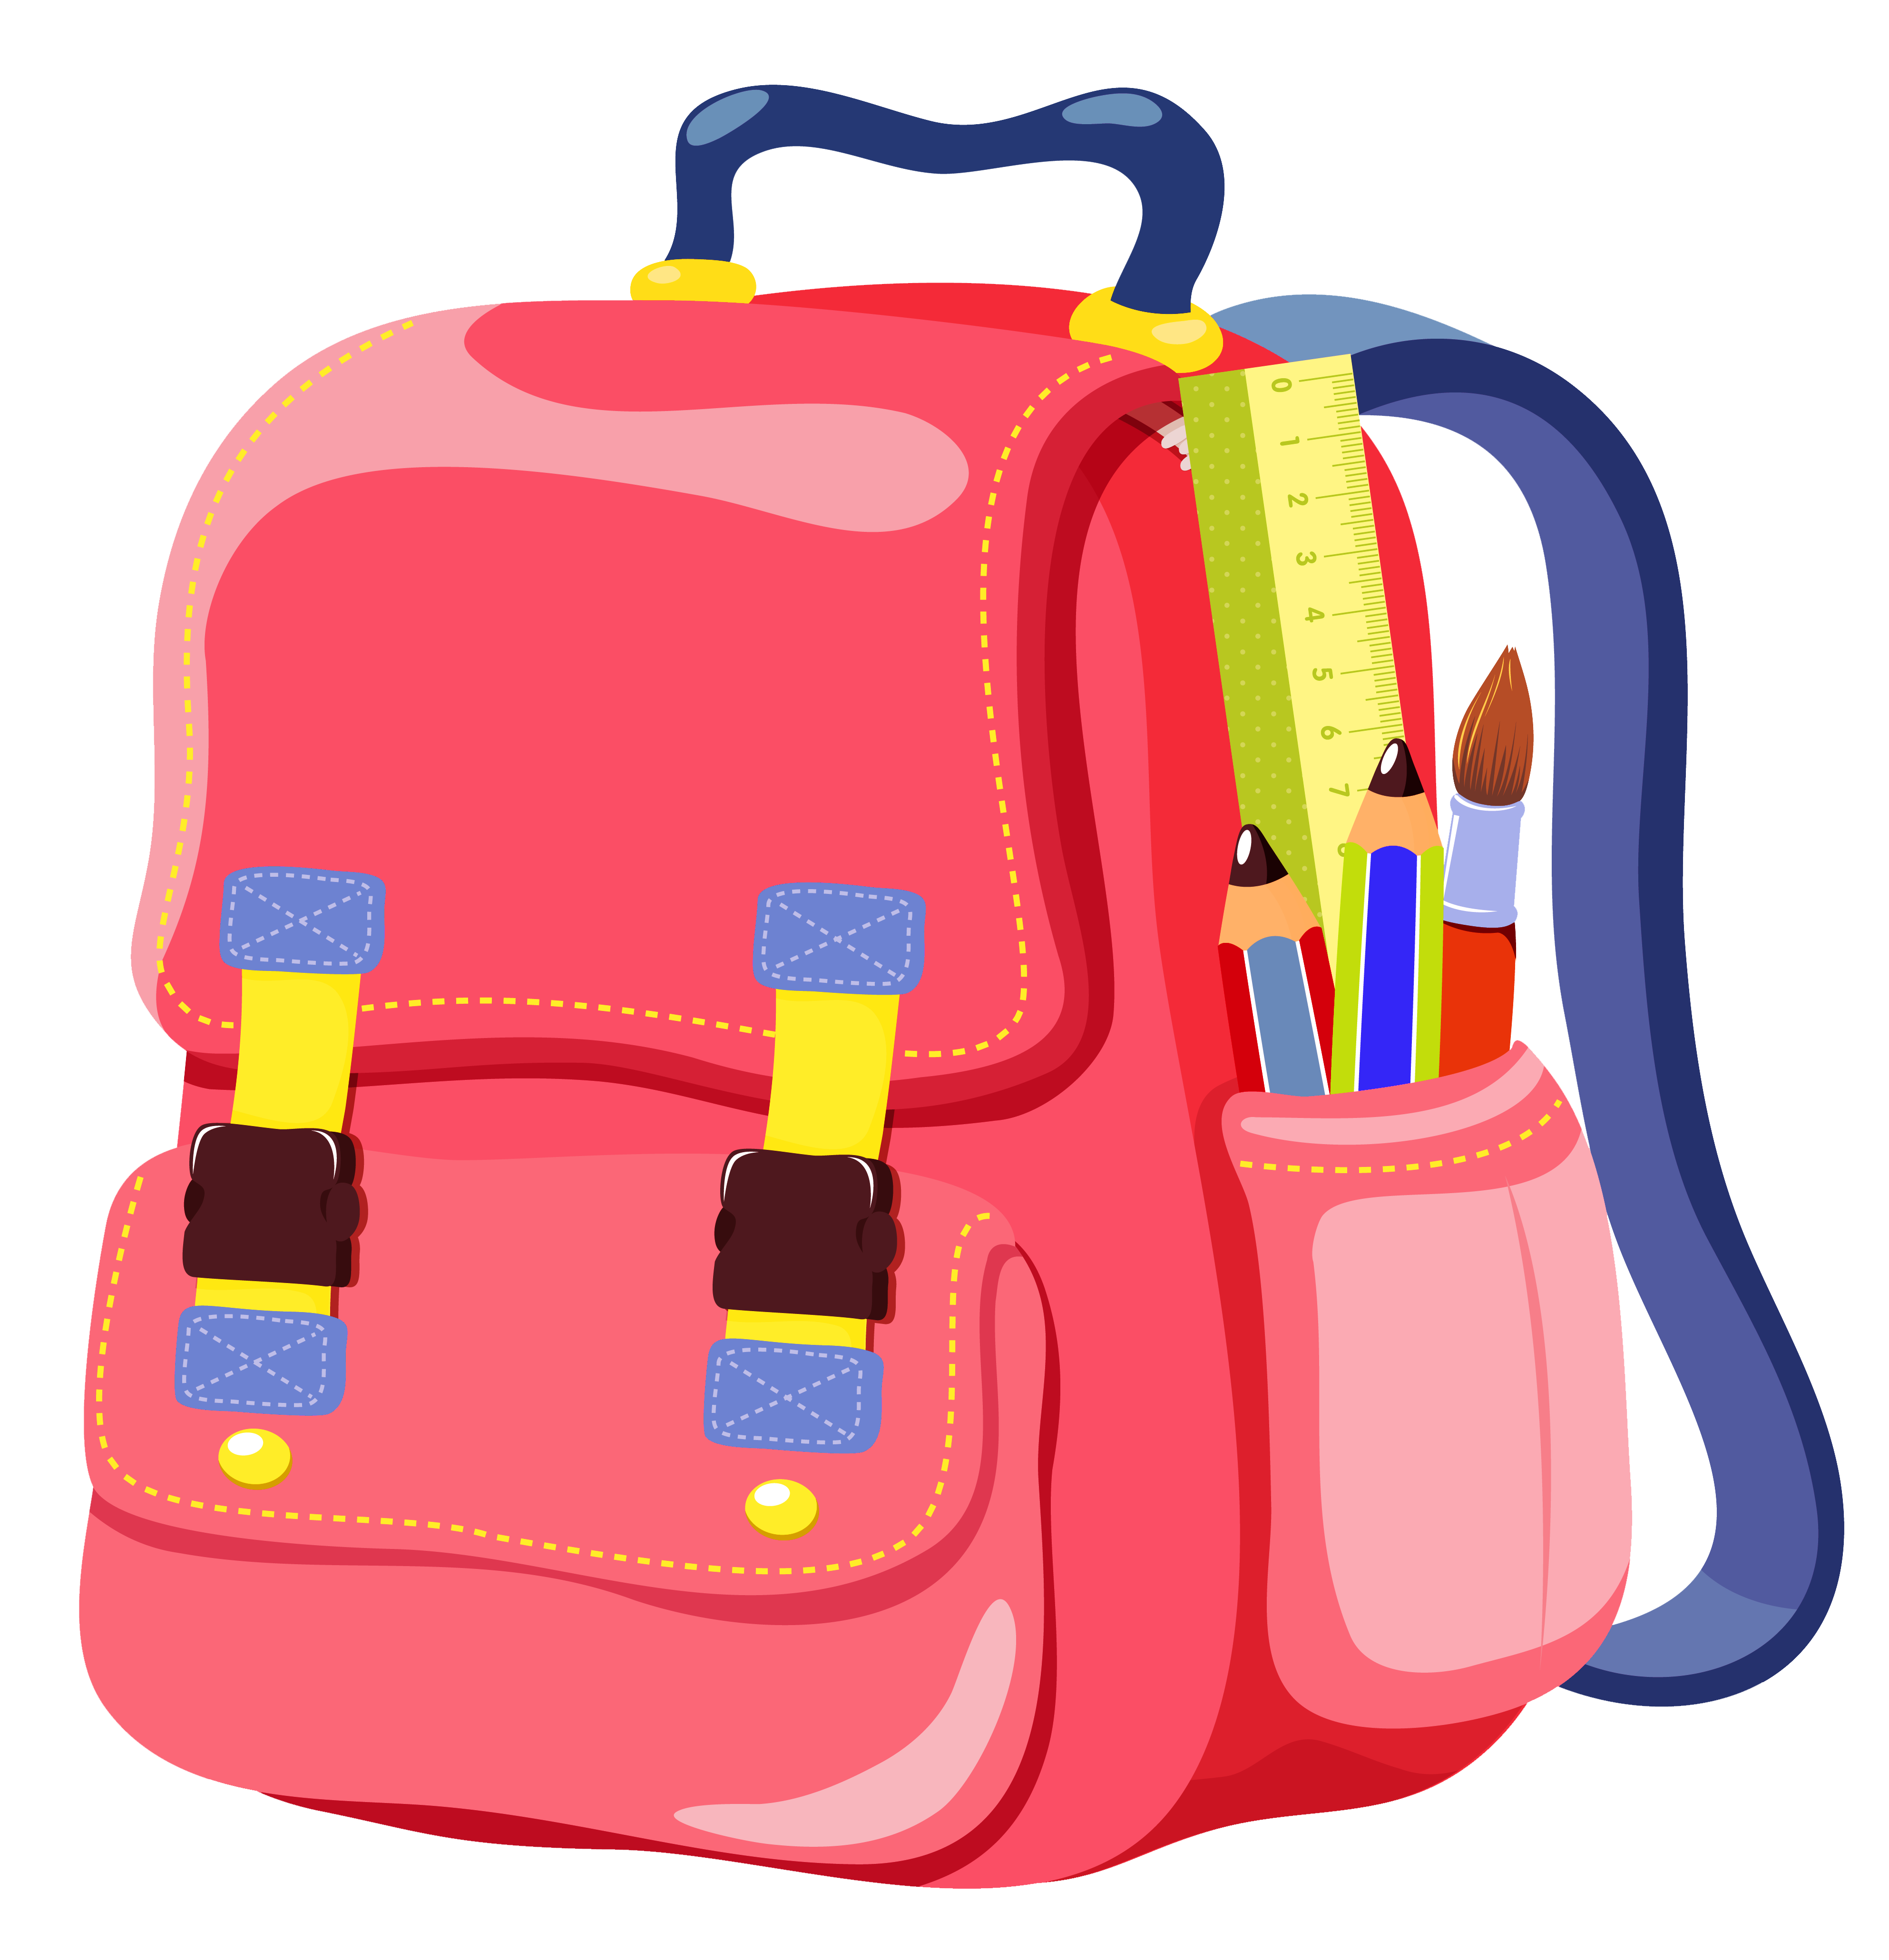 School bag clipart clip art black and white download Bag School Satchel Backpack Online shopping - School Backpack PNG ... clip art black and white download